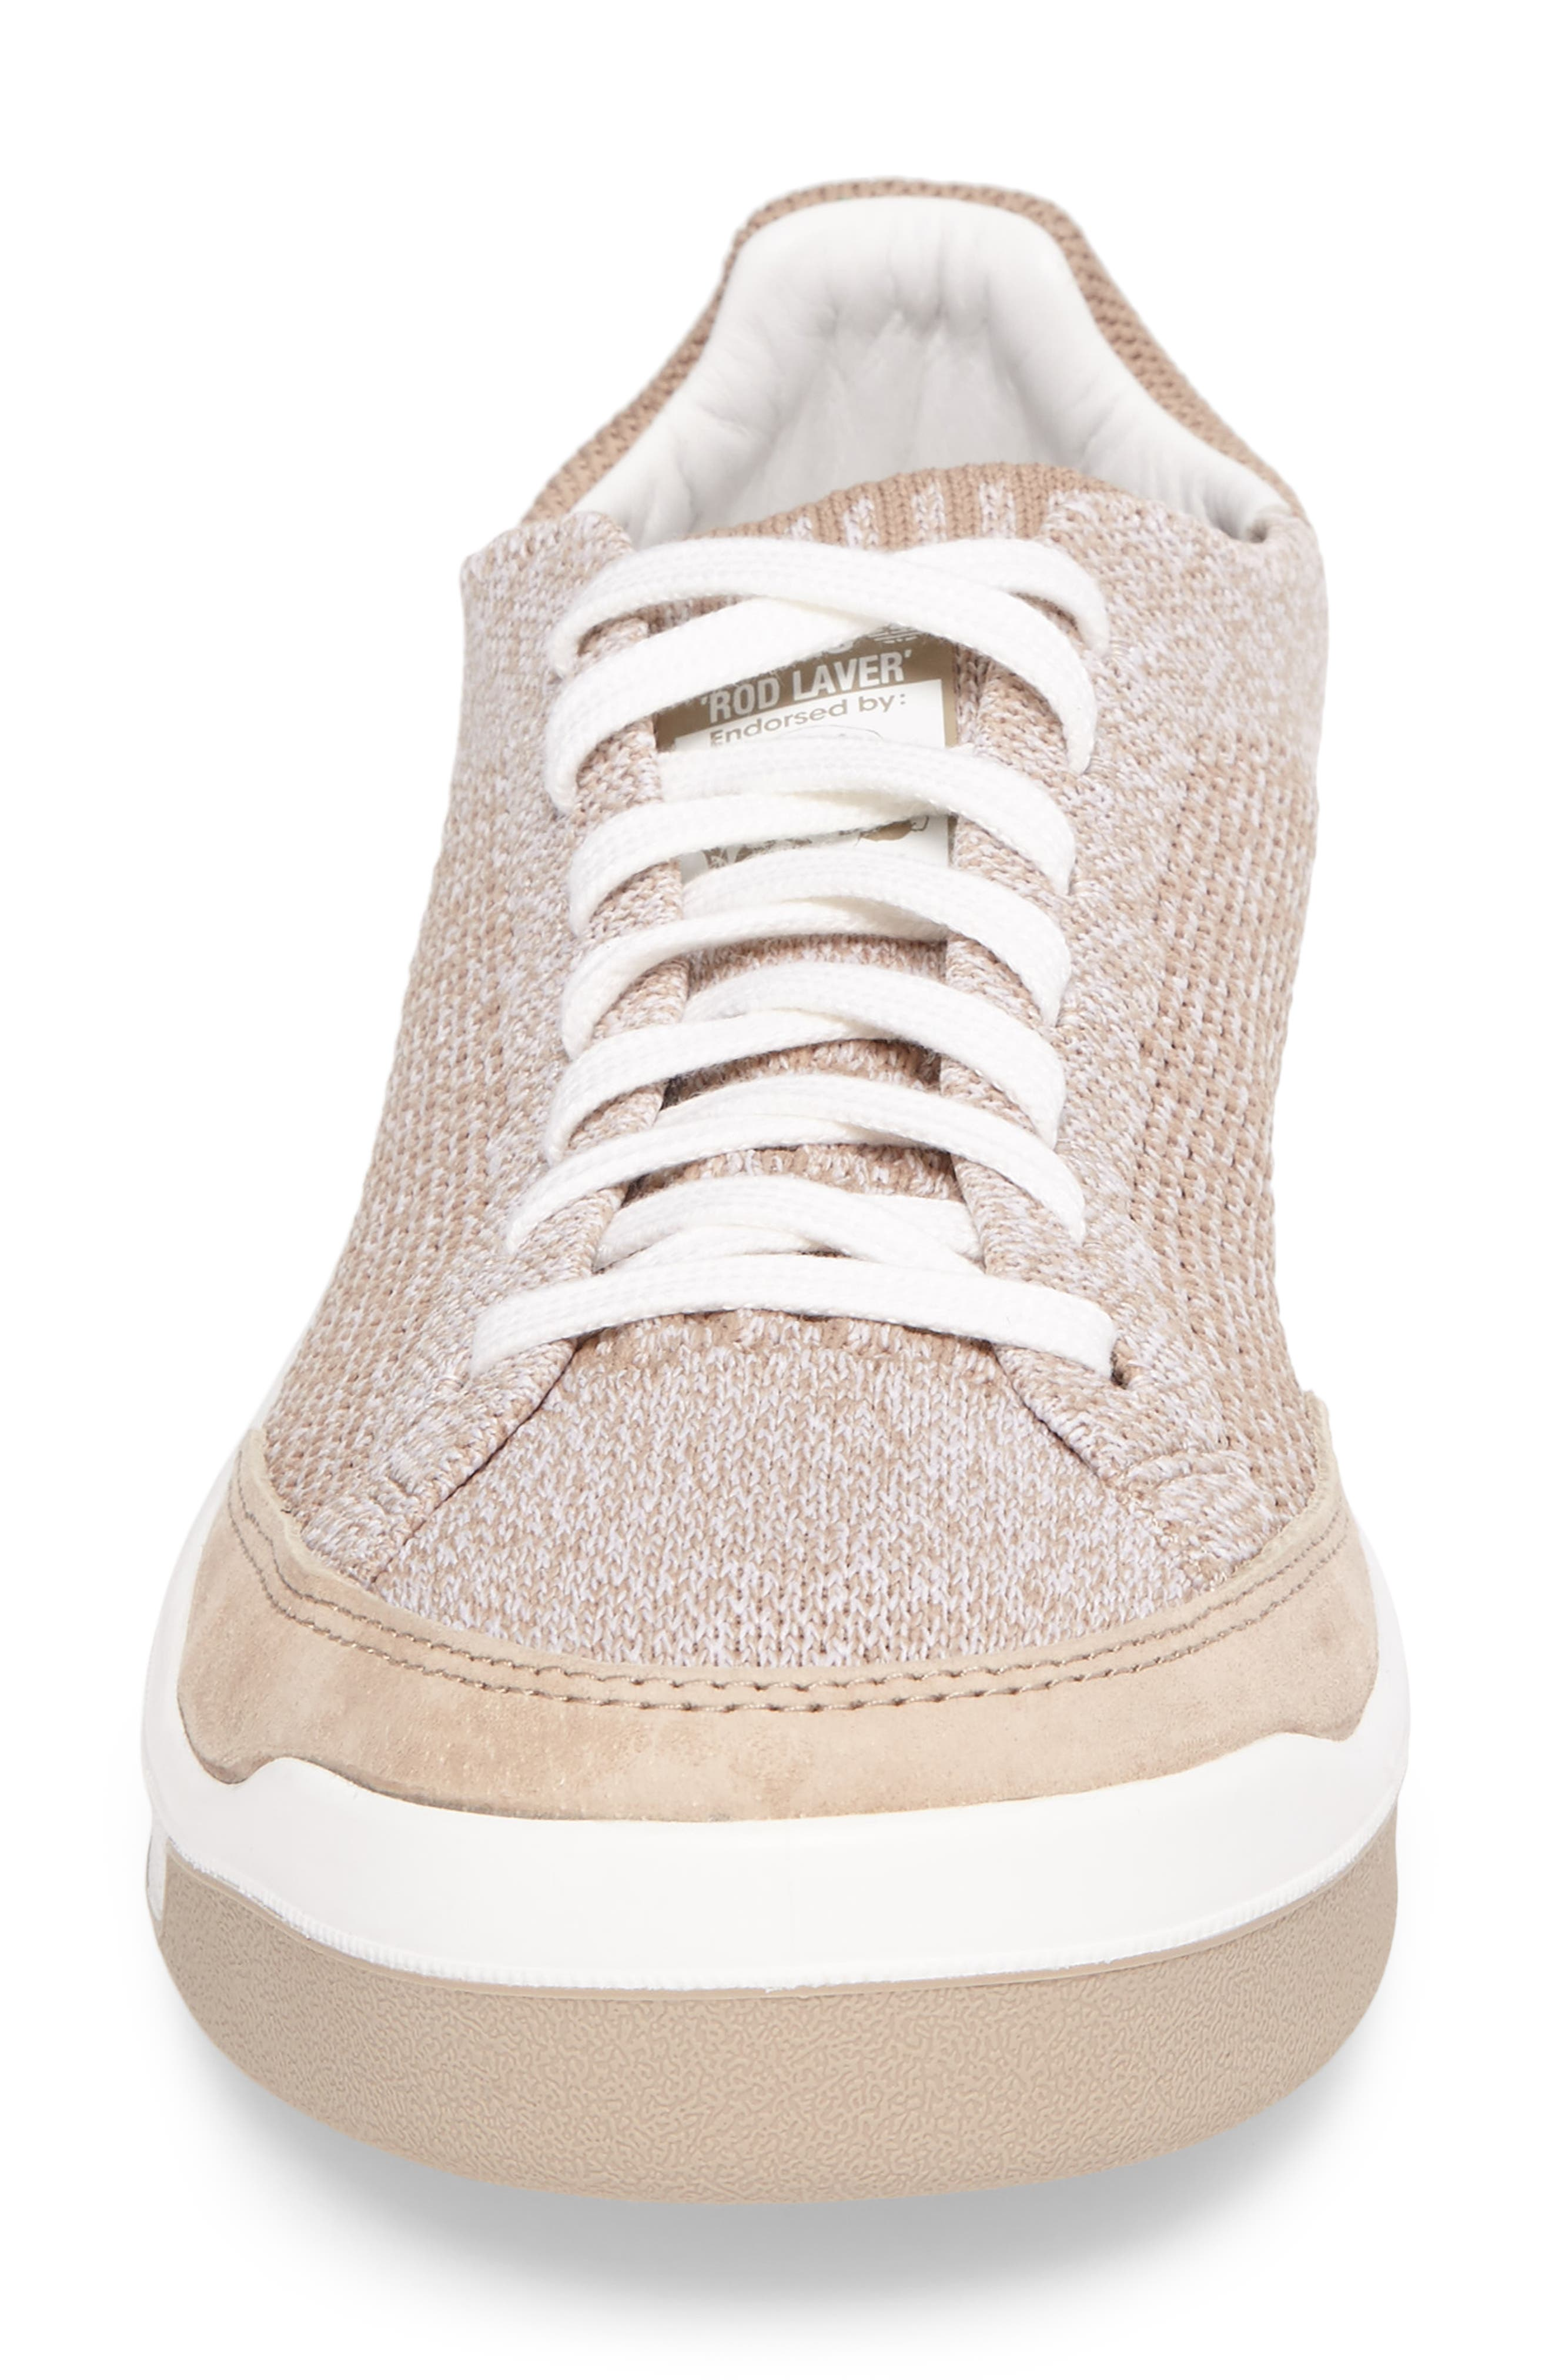 Rod Laver Super Primeknit Sneaker,                             Alternate thumbnail 4, color,                             Khaki/ White/ Crystal White